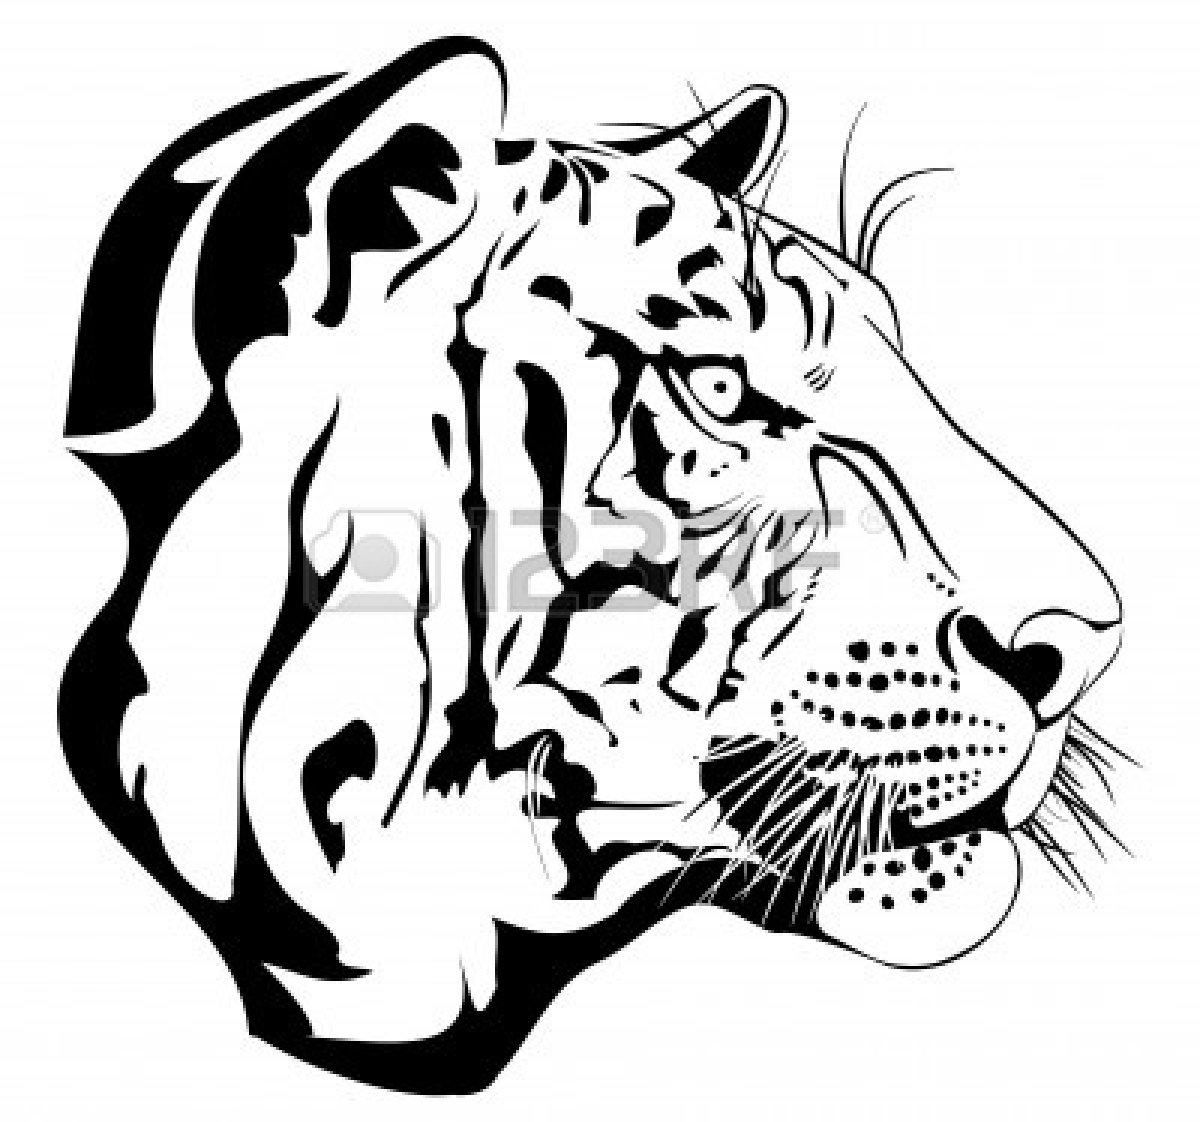 White Tiger clipart bengal tiger Tiger tiger%20eyes%20clip%20art Drawing Free Images